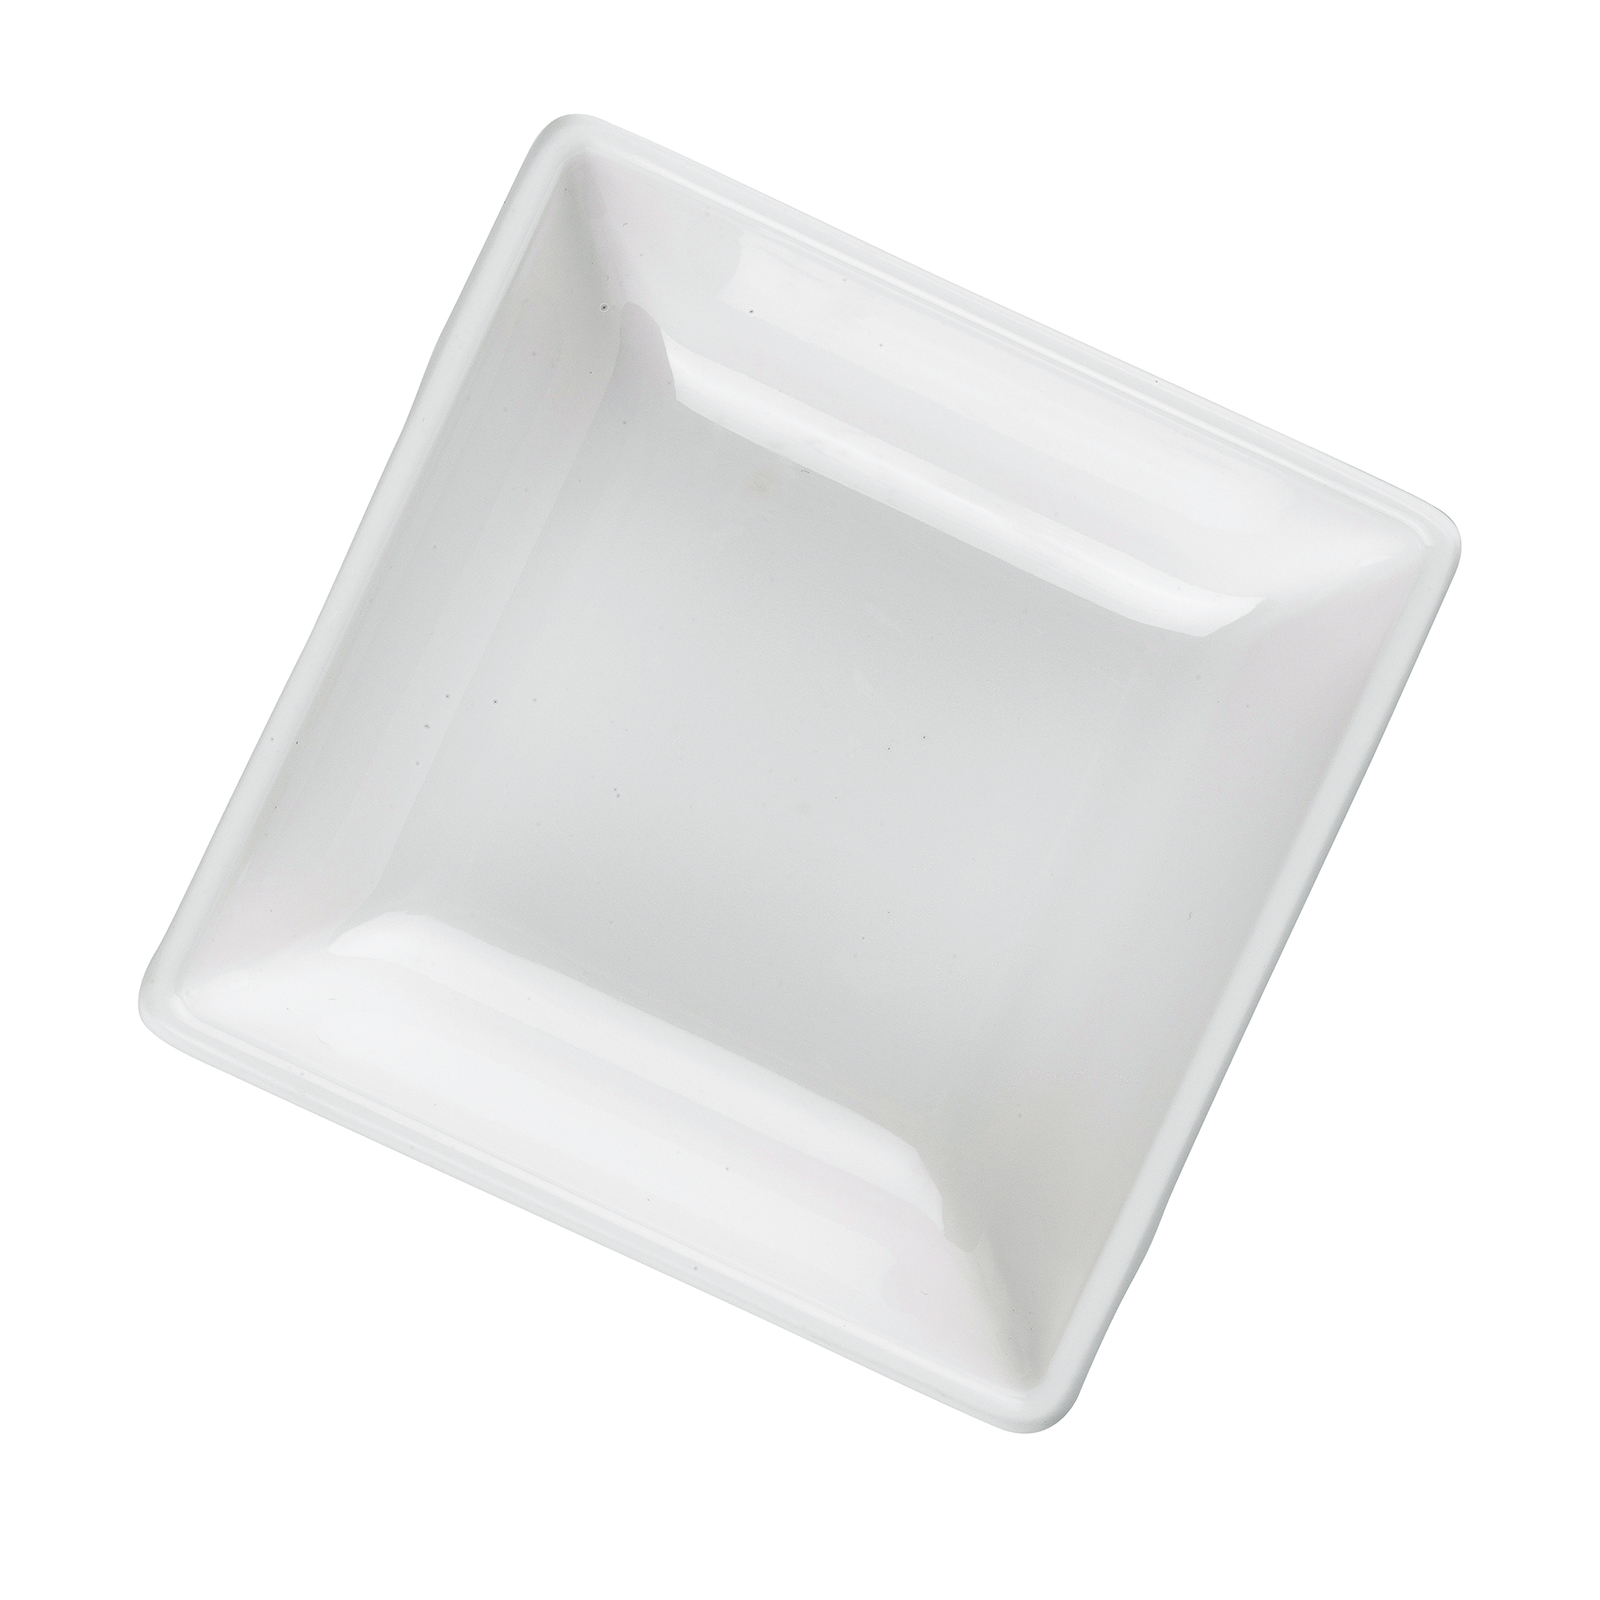 TableCraft Products 10316W appetizers & side servers